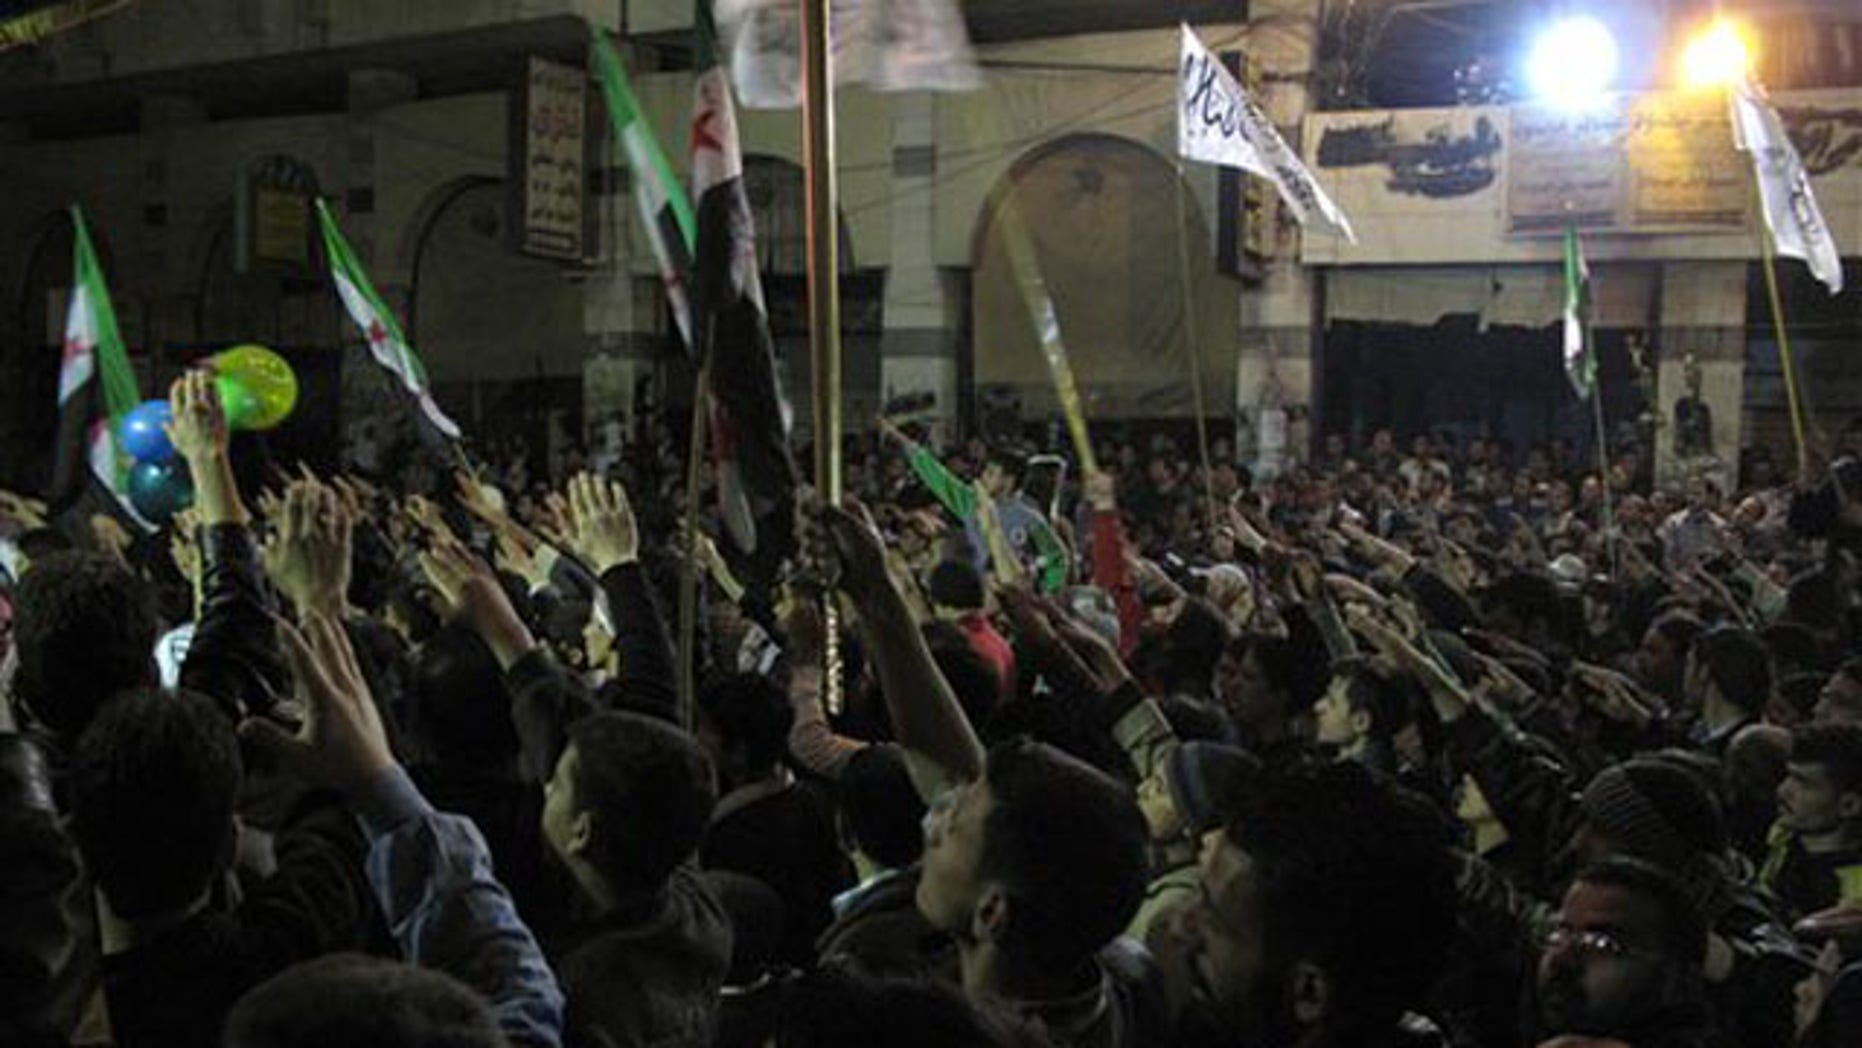 April 4, 2012: In this photo, Syrians raise their hands vowing to continue fighting until President Bashar Assad's regime falls during a protest in a neighborhood in Damascus, Syria.